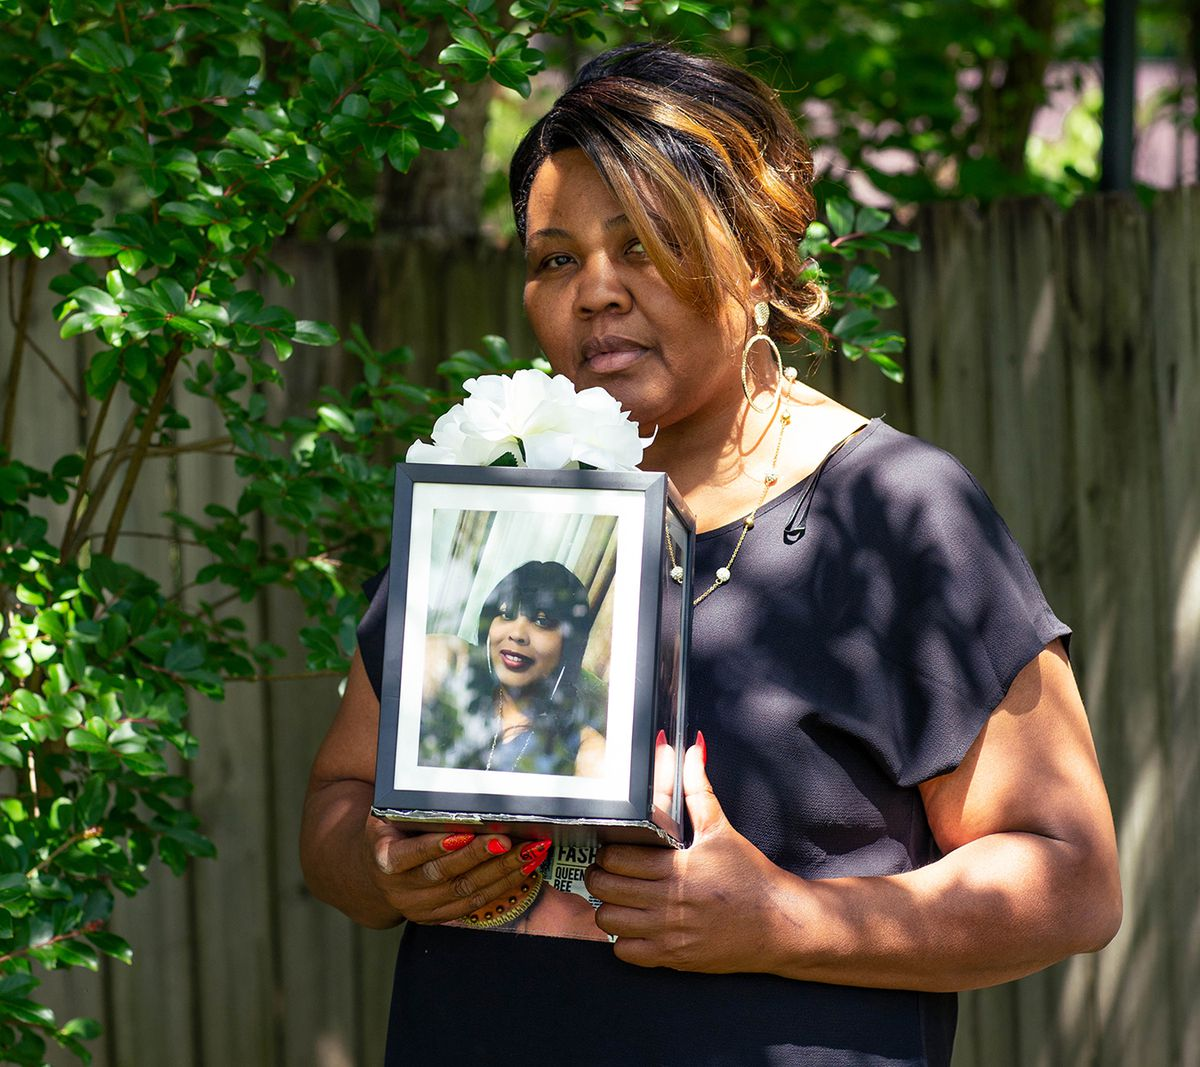 It's been more than a year since Cassandra Rollins' daughter Shalondra died of COVID-19, but Rollins says the grief is unrelenting. She'ss now raising Shalondra's two teenage daughters.